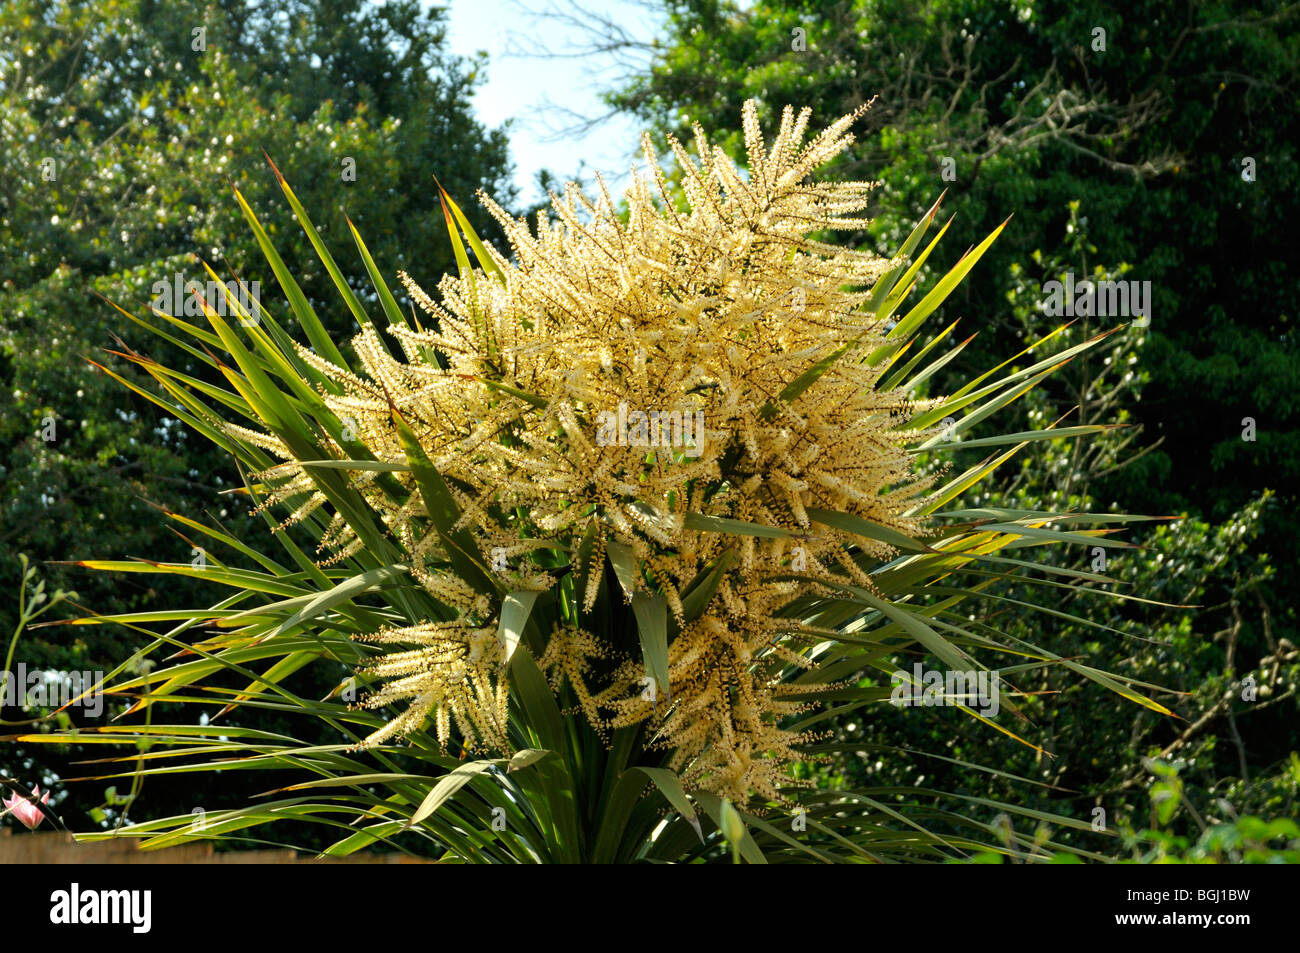 Cordyline australis Cabbage Palm Tree Stock Photo Royalty Free